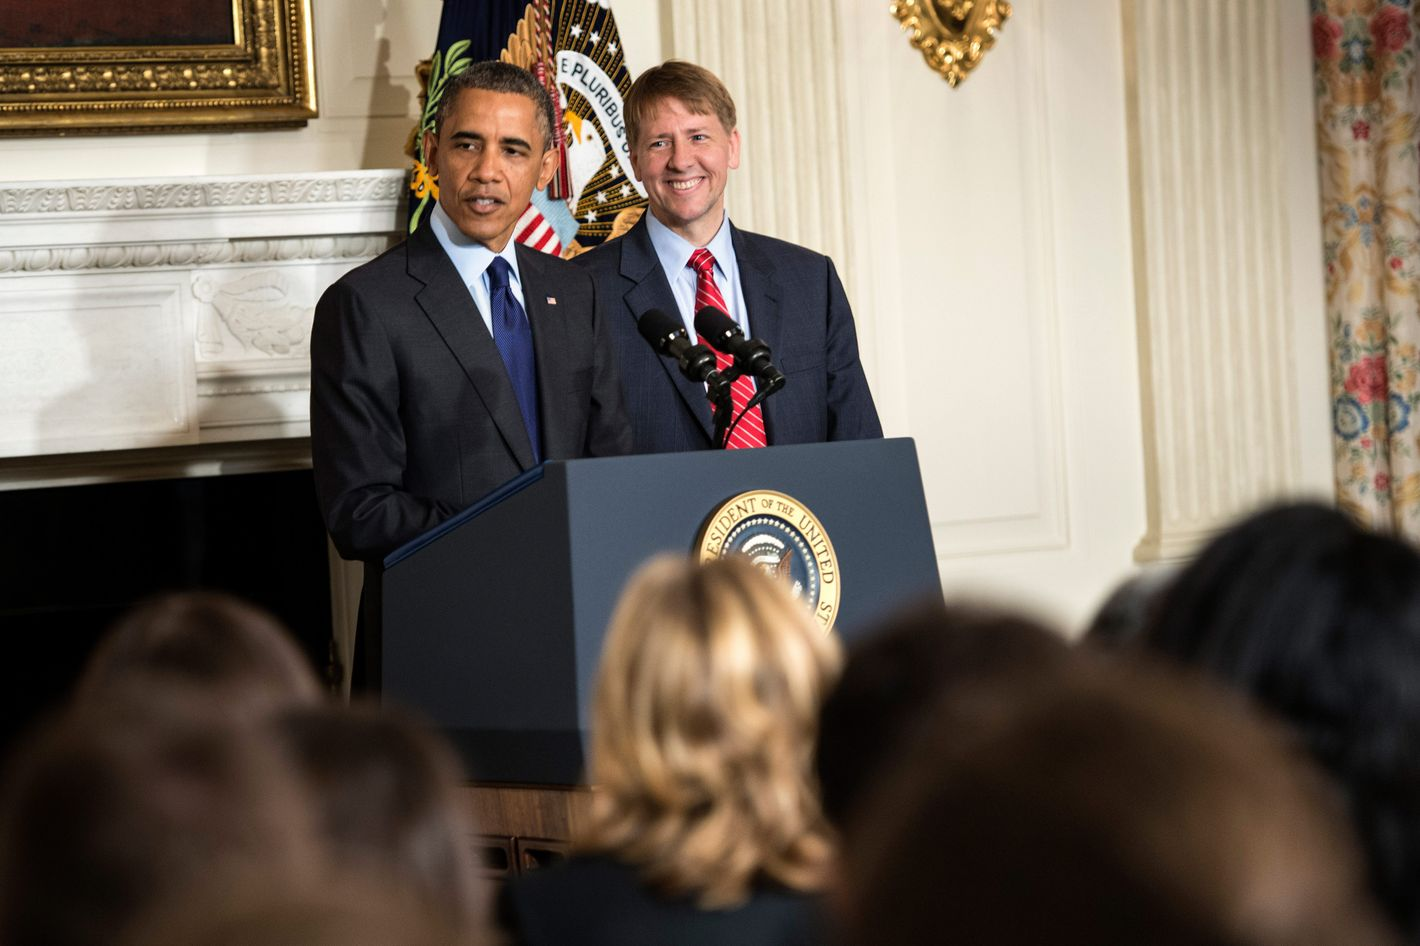 Consumer Financial Protection Bureau Director Richard Cordray listens to US President Barack Obama make a statement in the State Dining Room of the White House July 17, 2013 in Washington, DC. Obama spoke about the recent confirmation of Cordray as the Director of the Consumer Financial Protection Bureau, who was sworn in earlier today.